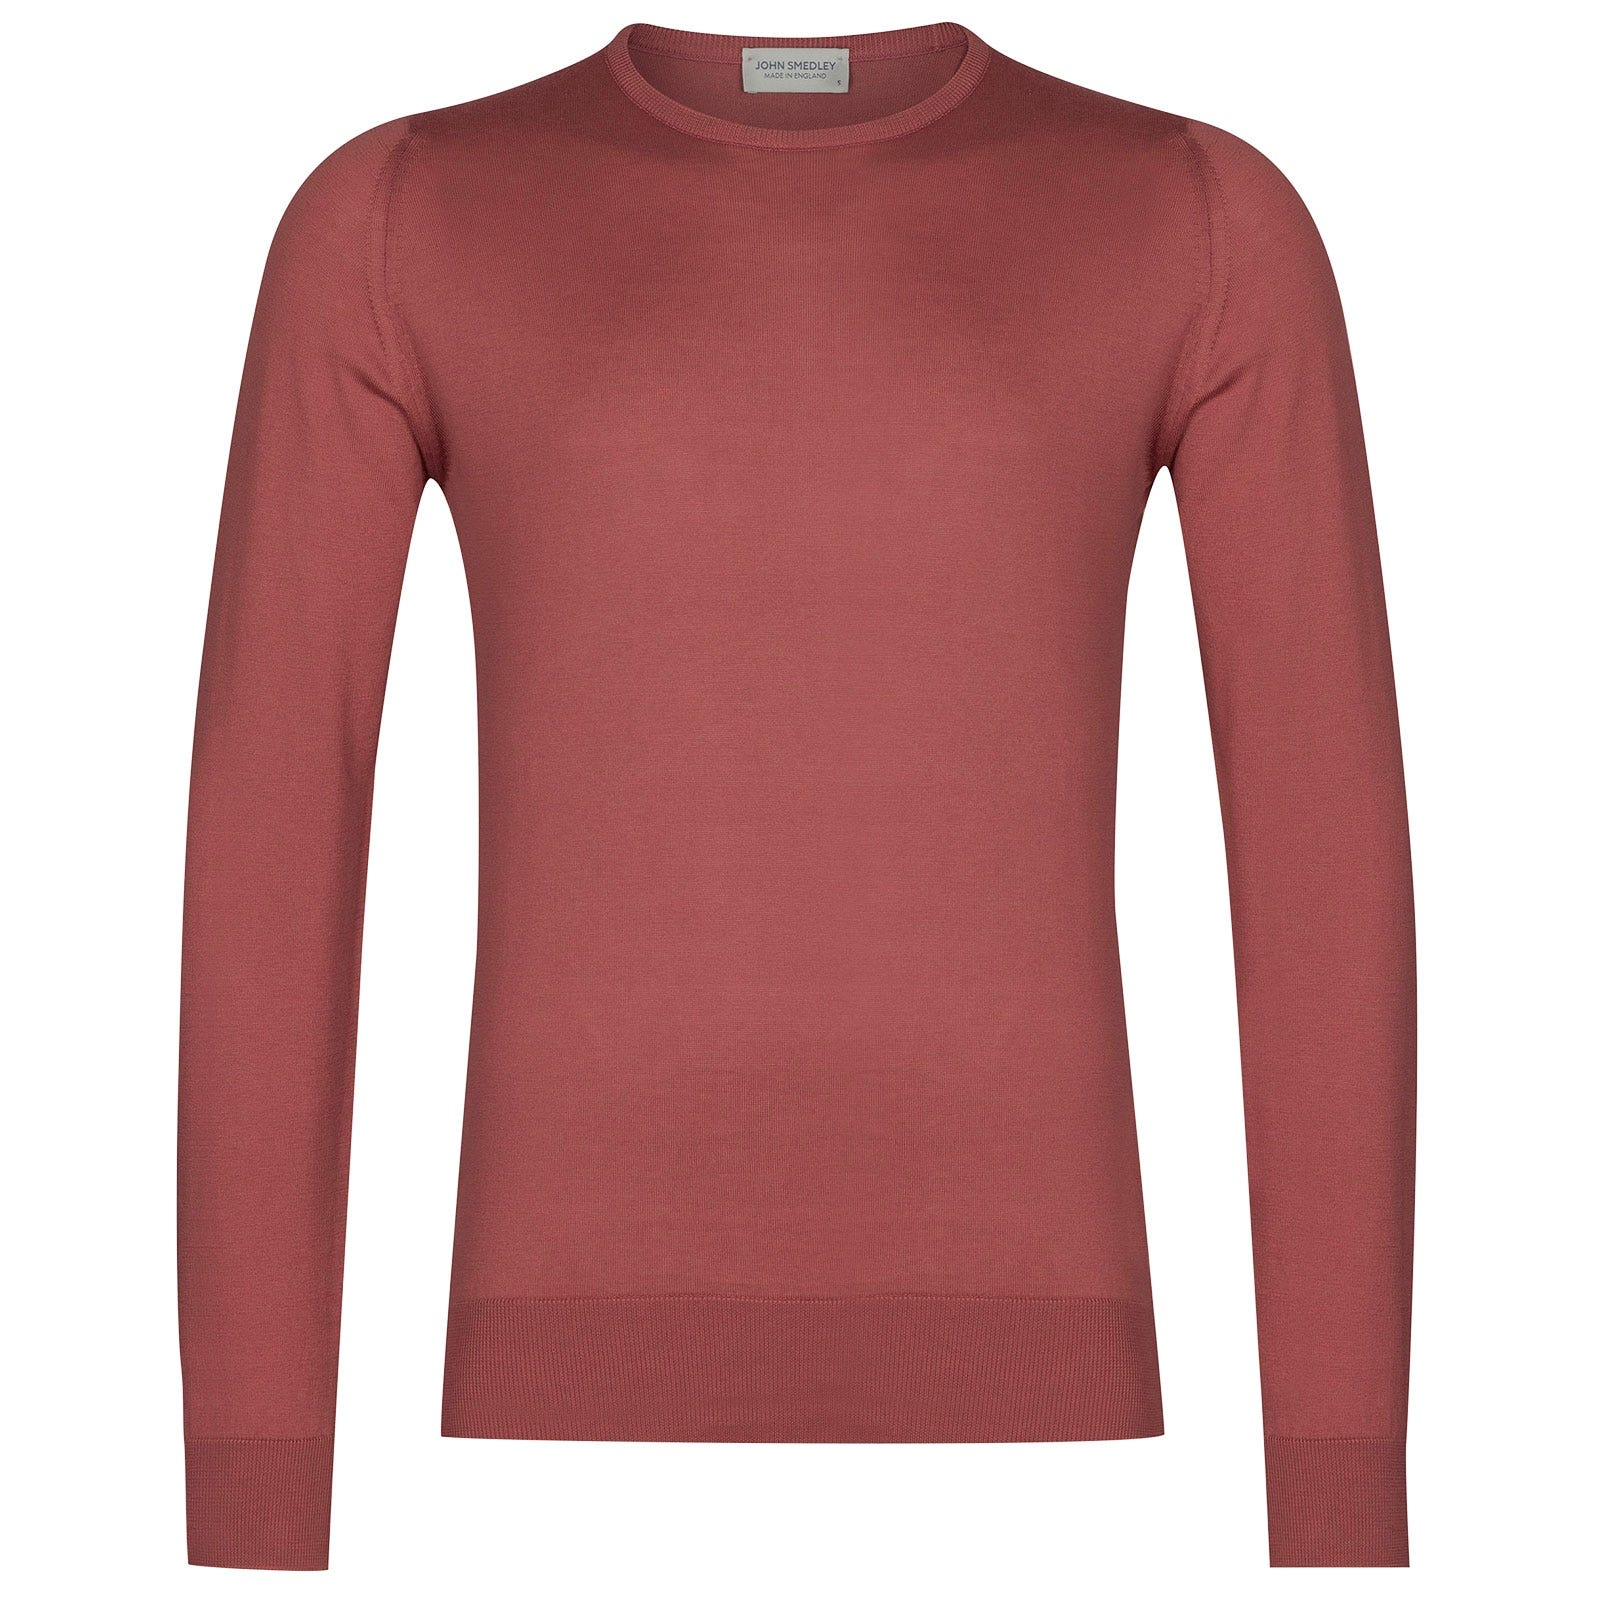 John Smedley hatfield Sea Island Cotton Pullover in Stanton Pink-S